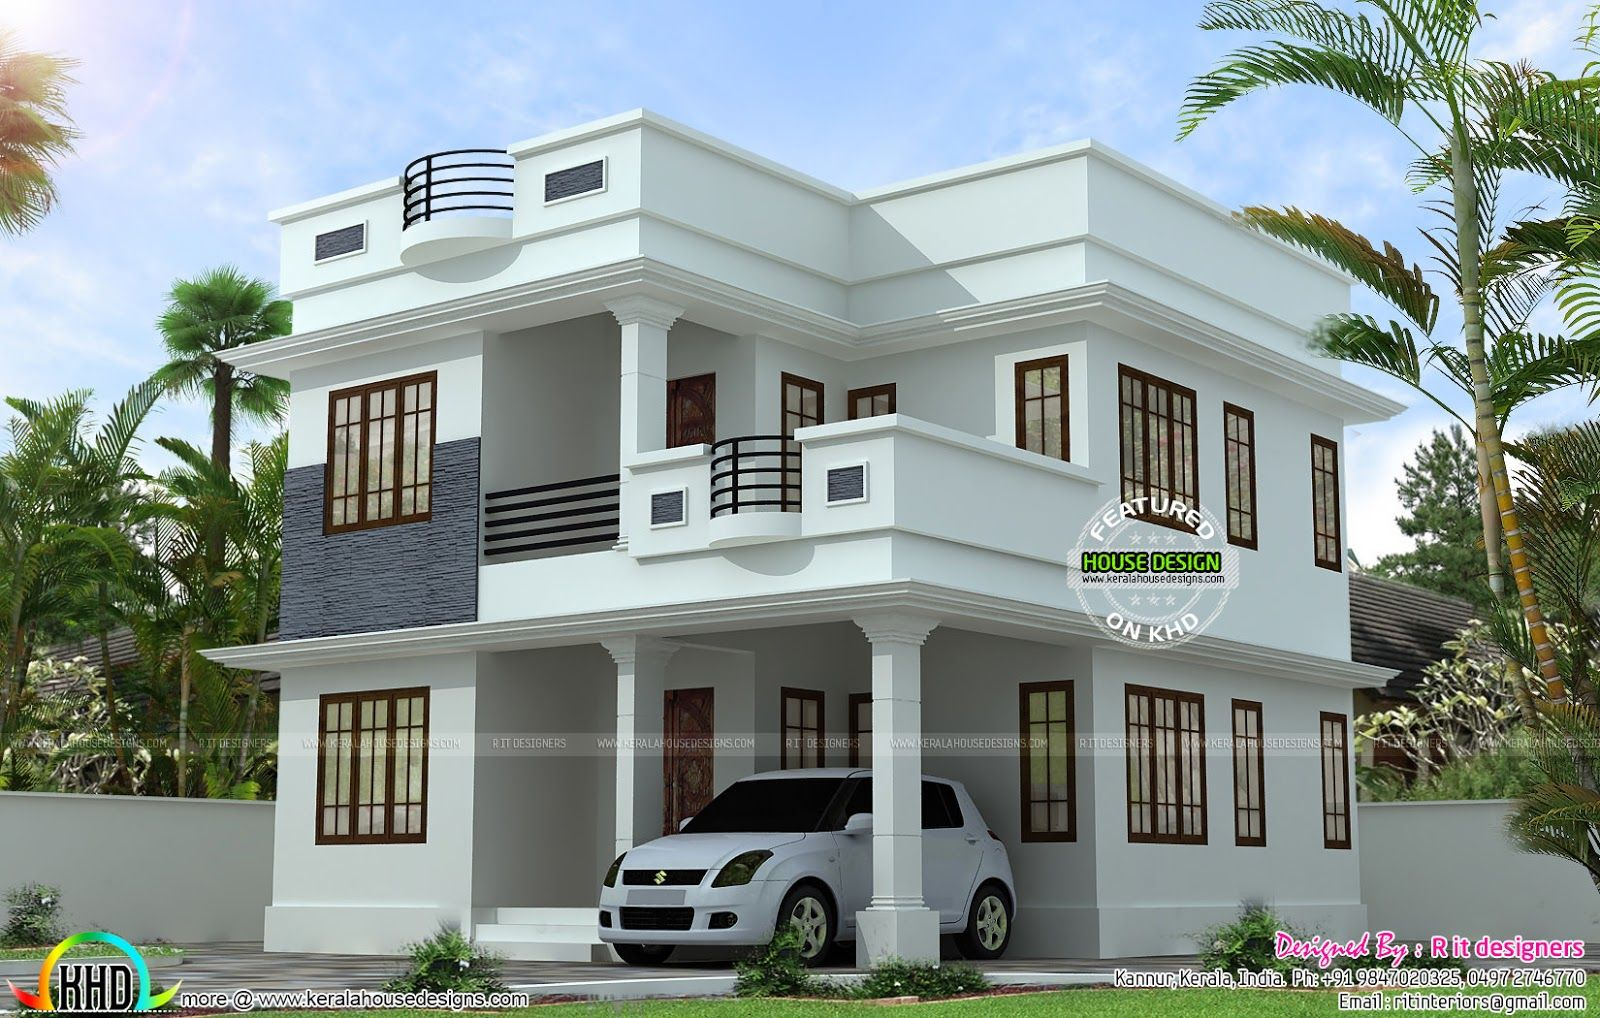 Small Houses Design rumah minimalis 2 lantai bergaya modern small modern house Neat And Simple Small House Plan Kerala Home Design And Floor Plans